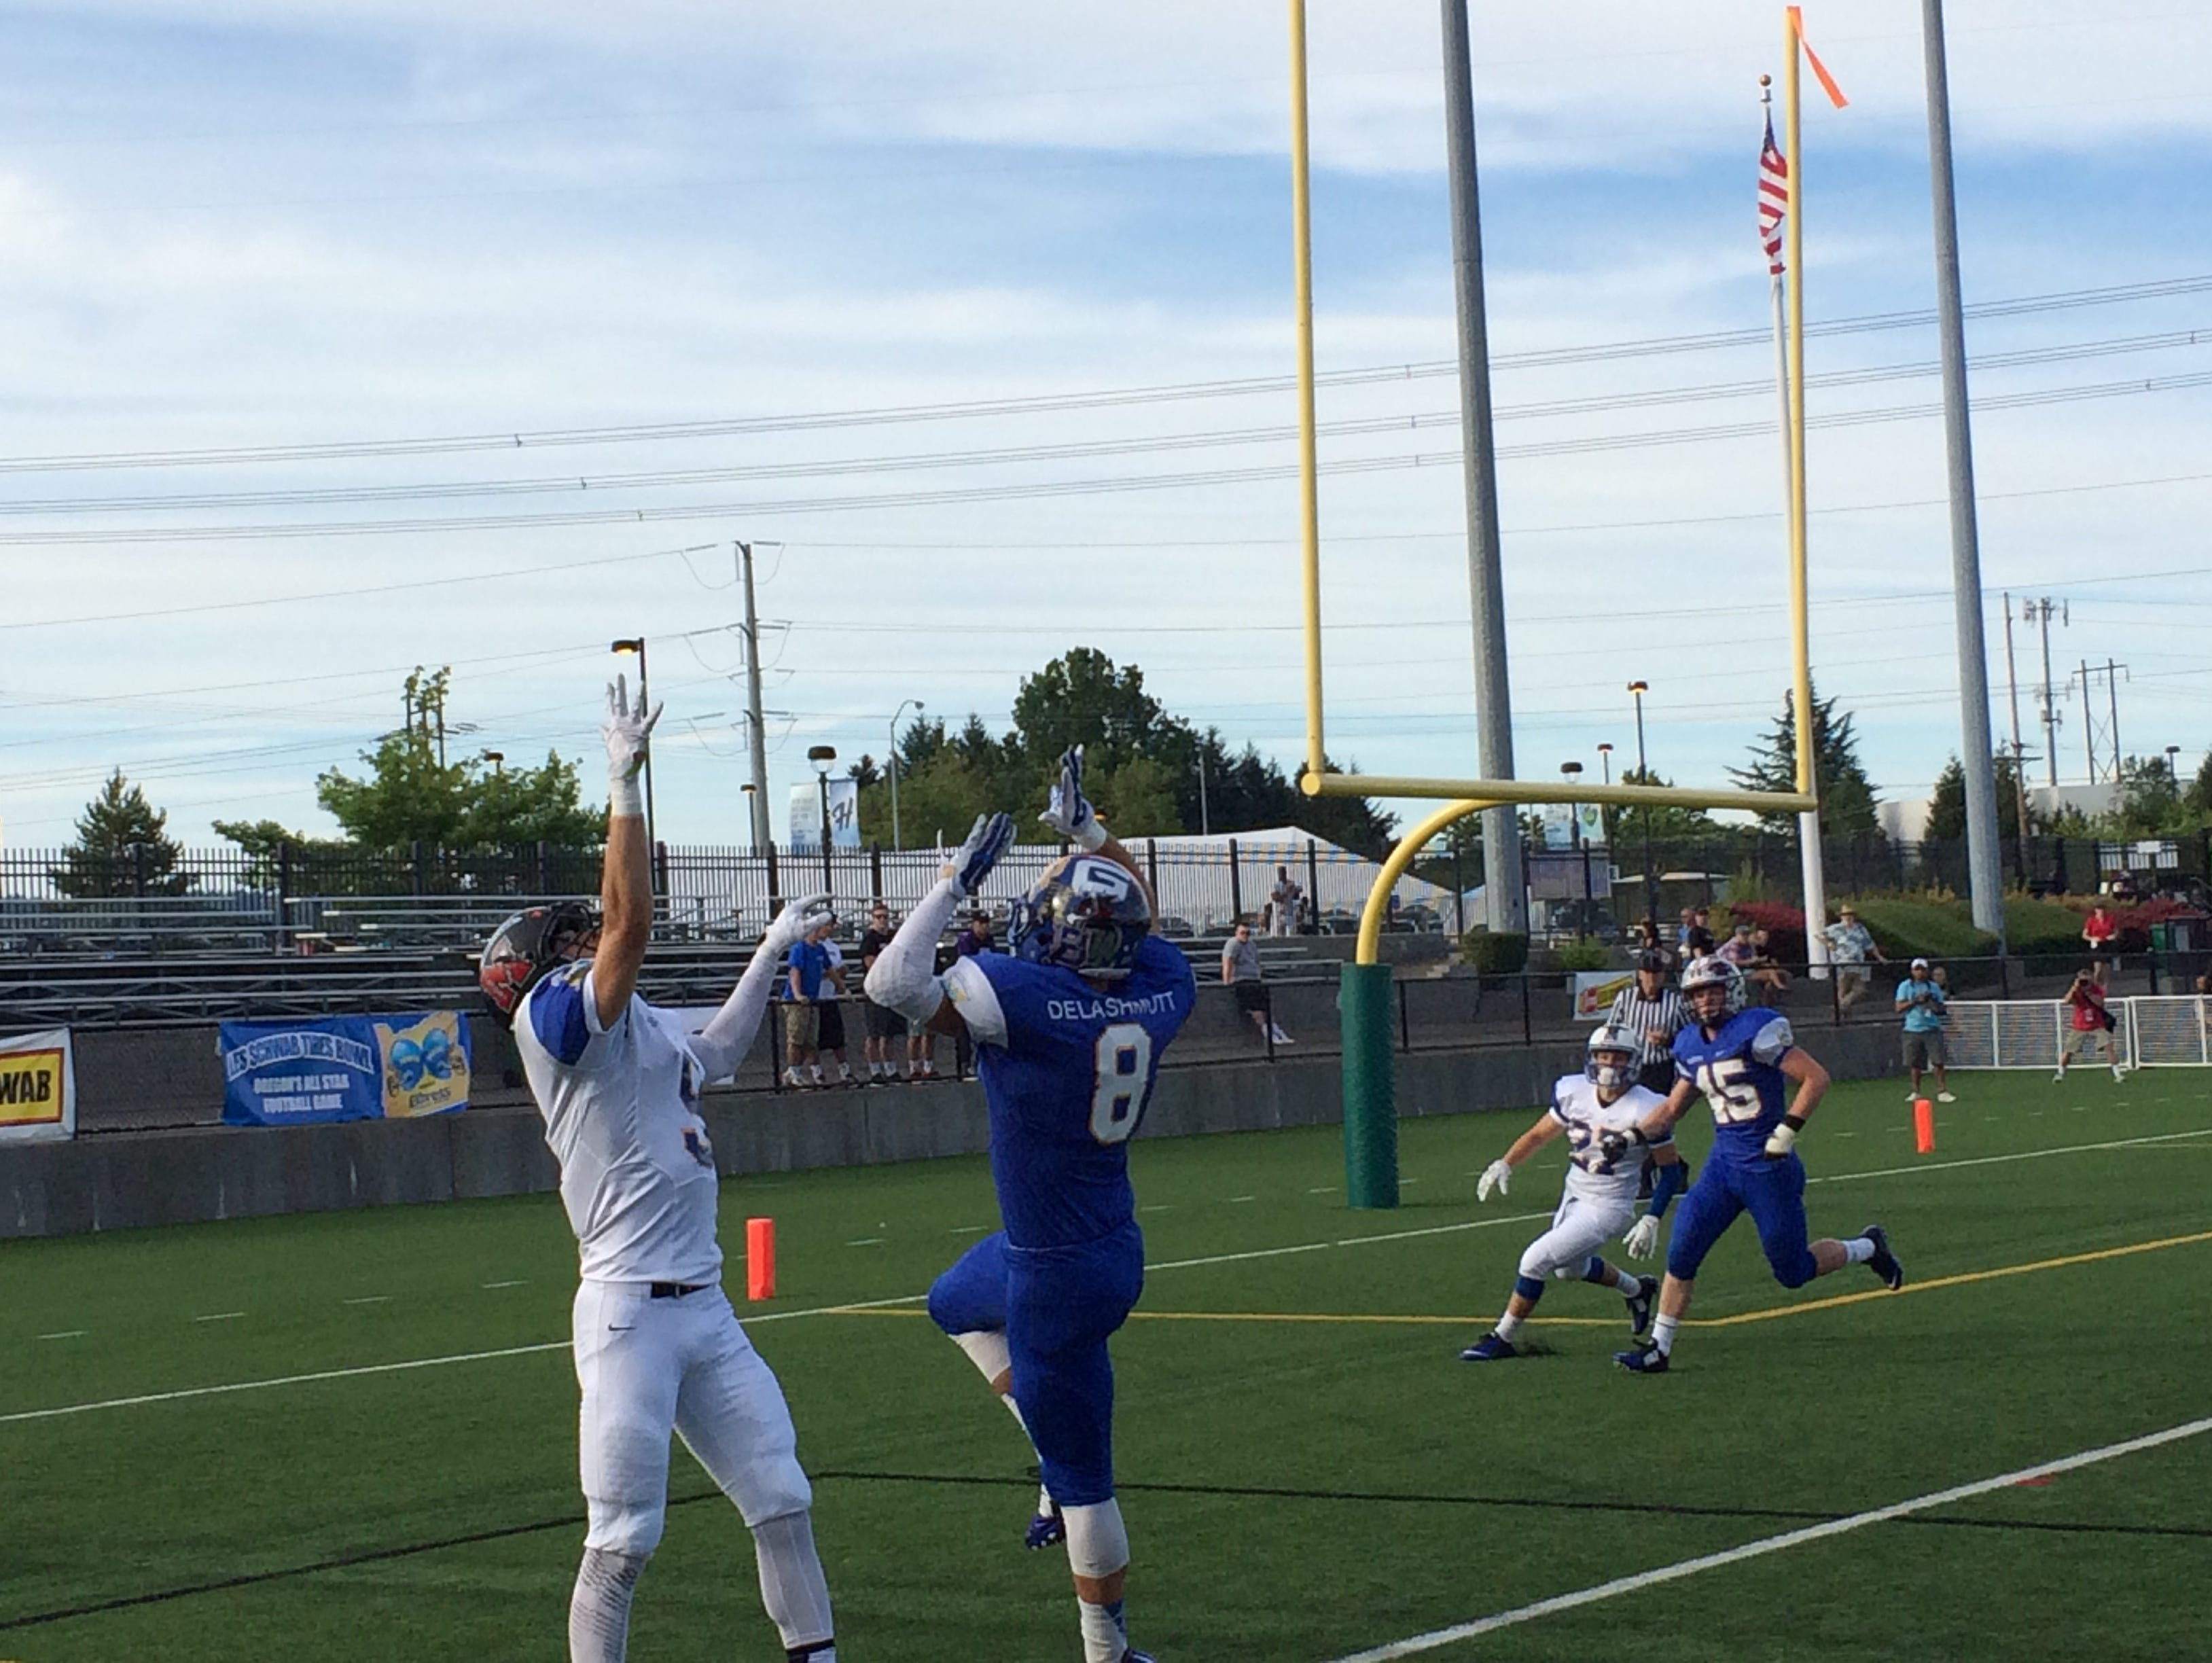 Tigard's Brady McGetrick attempts to make a catch for the South against Newberg's Tyler Delashmutt of the South.